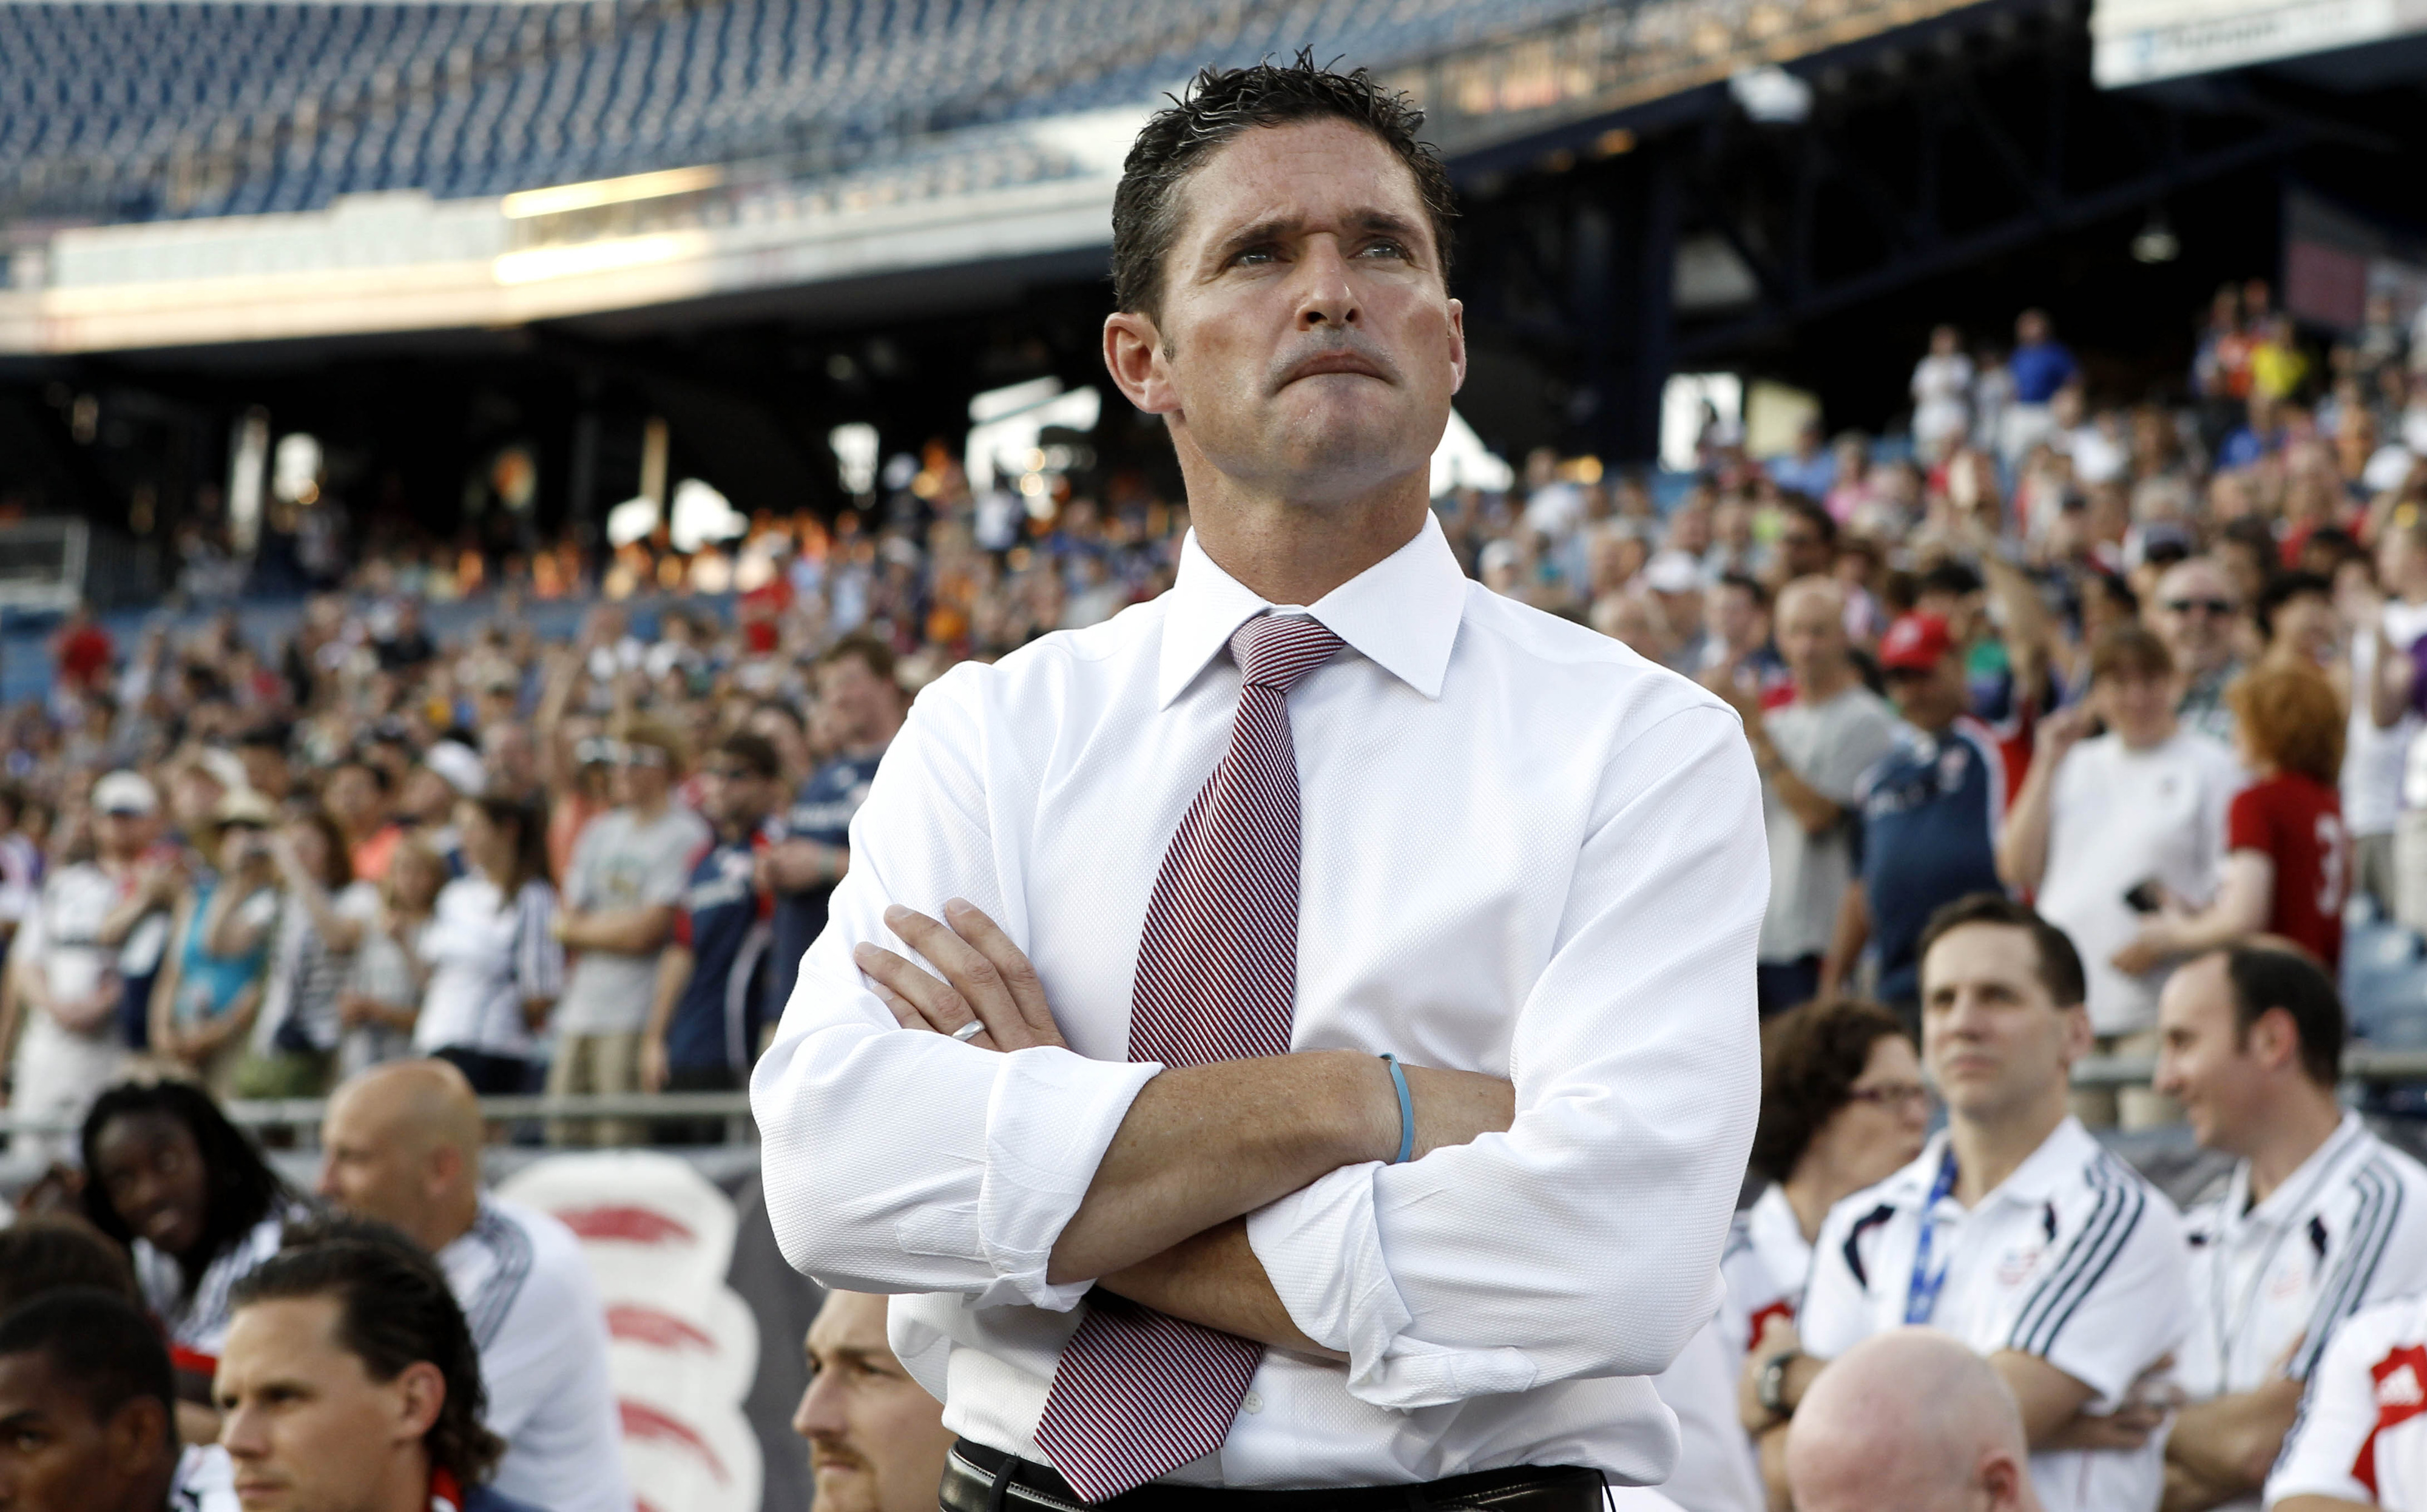 FOXBORO, MA - JULY 14:  Head coach Jay Heaps of New England Revolution looks on before their game against the Toronto FC at Gillette Stadium on July 14, 2012 in Foxboro, Massachusetts.  (Photo by Winslow Townson/Getty Images)